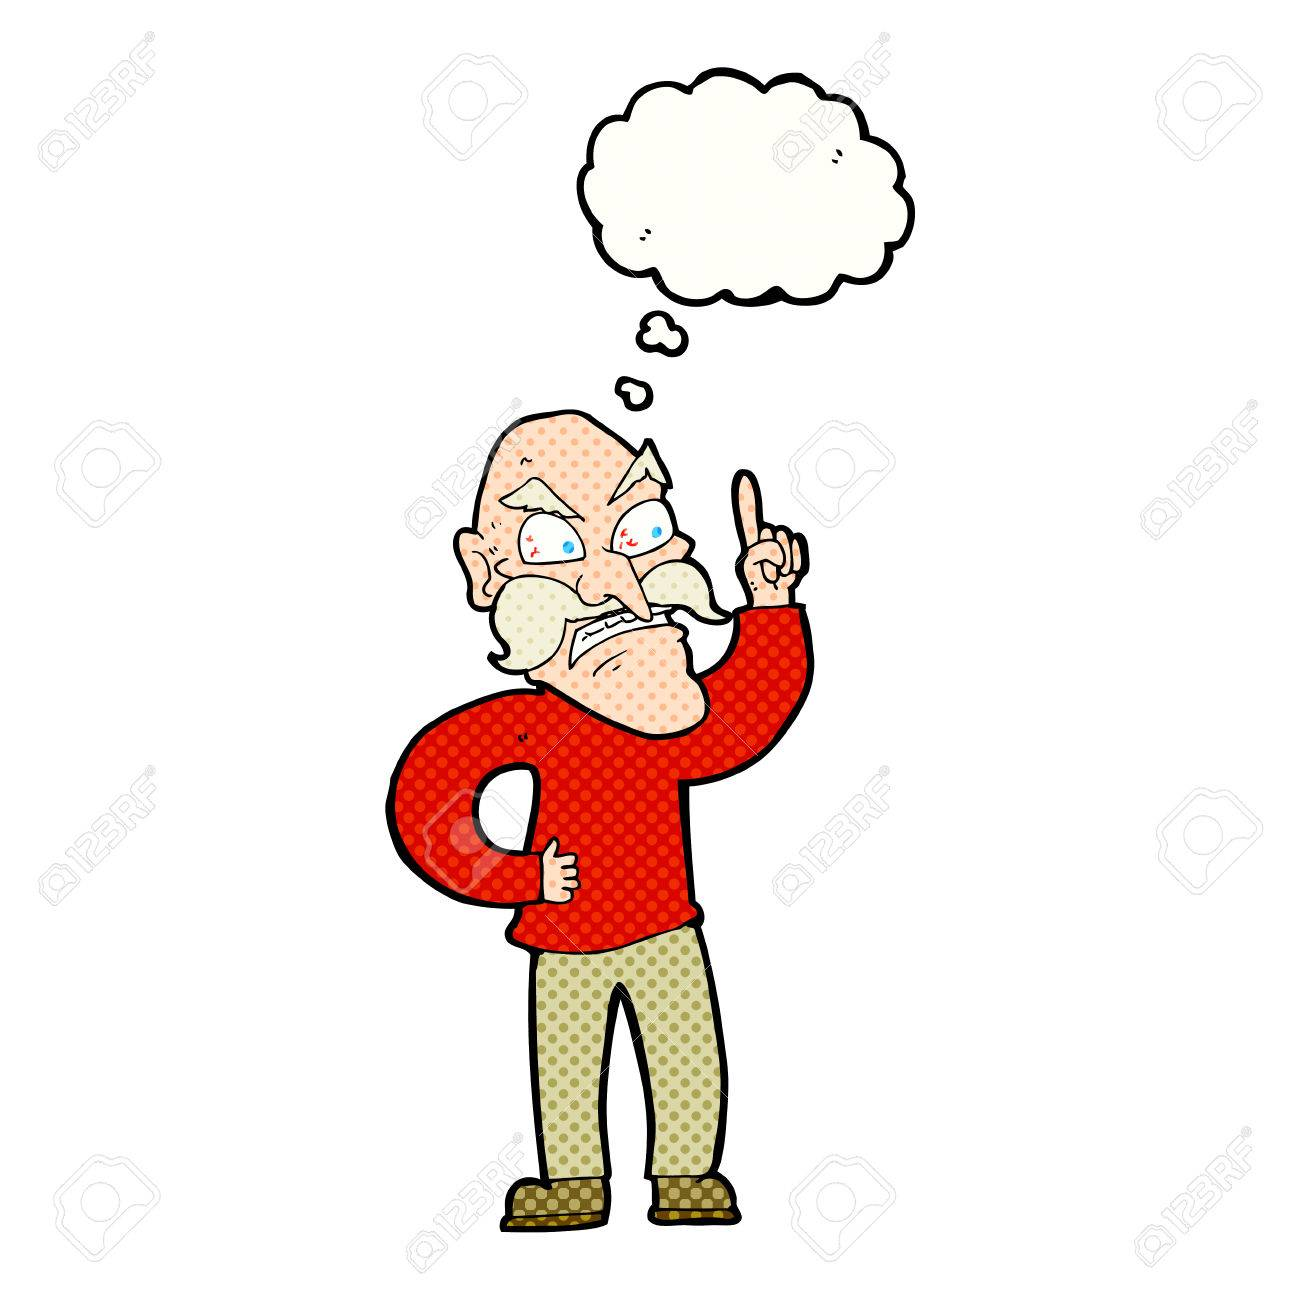 cartoon old man laying down rules with thought bubble royalty free